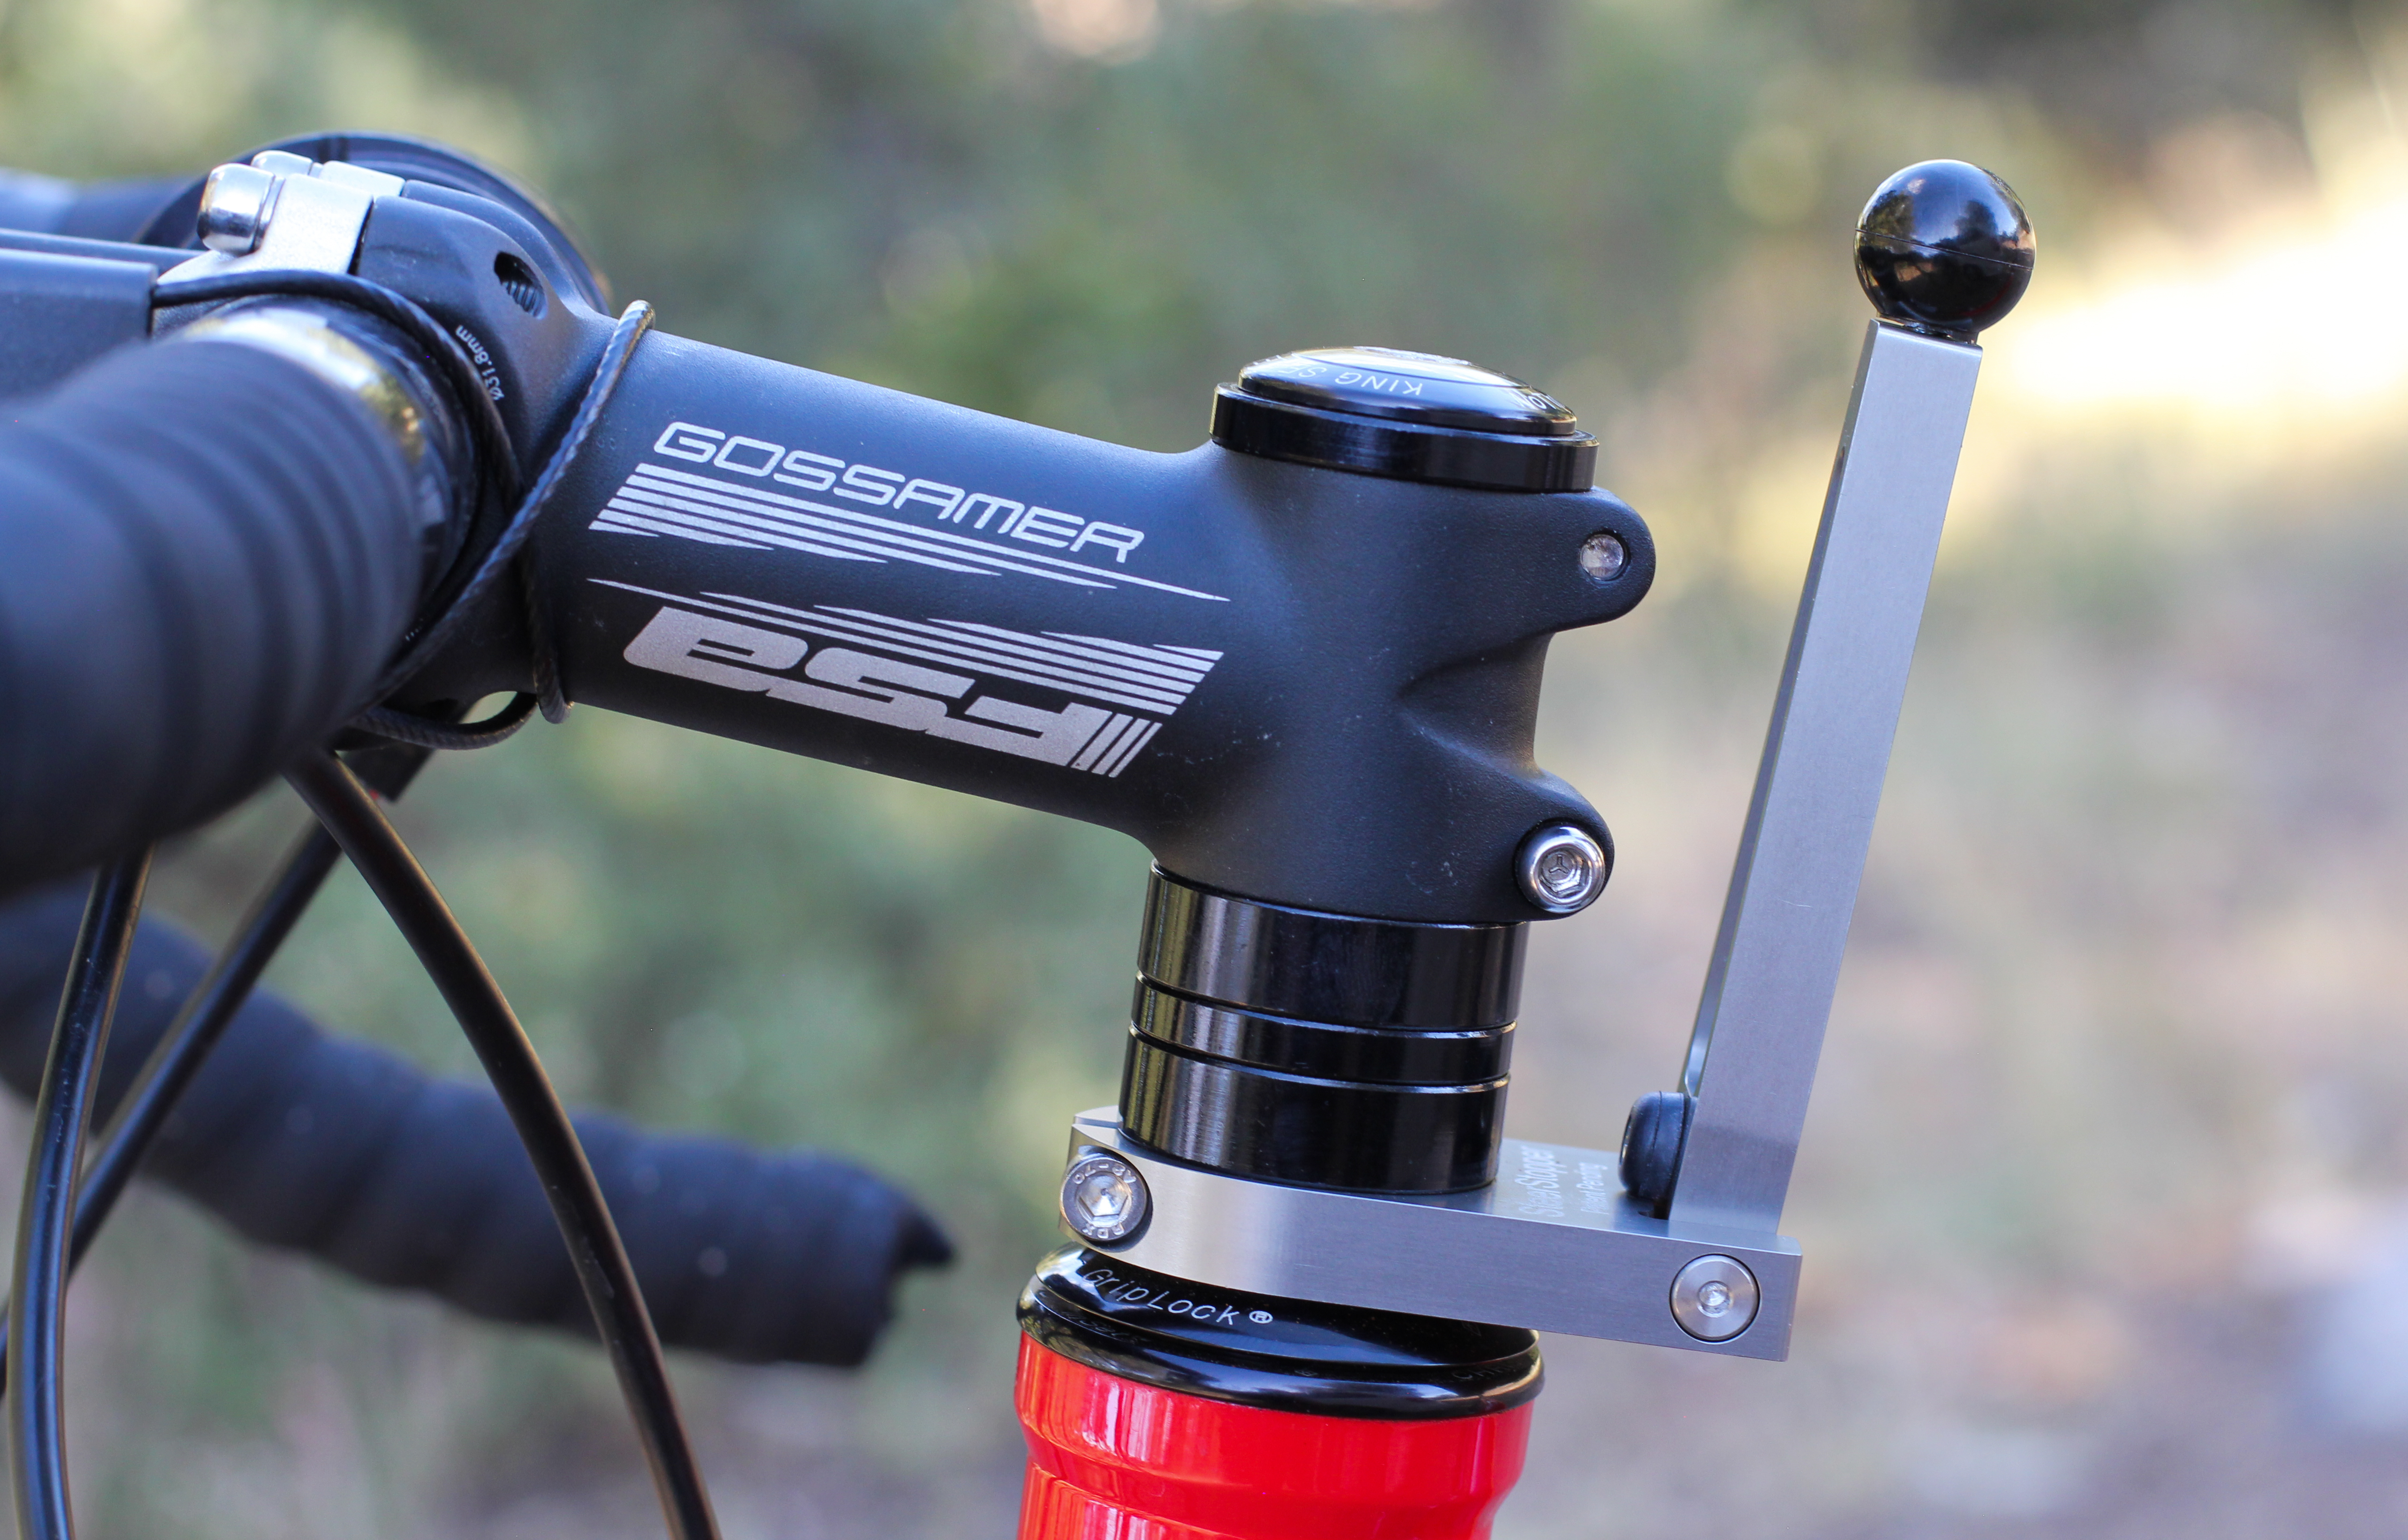 8f98dd09393 The SteerStopper - It's a Parking Brake for Your Bicycle!